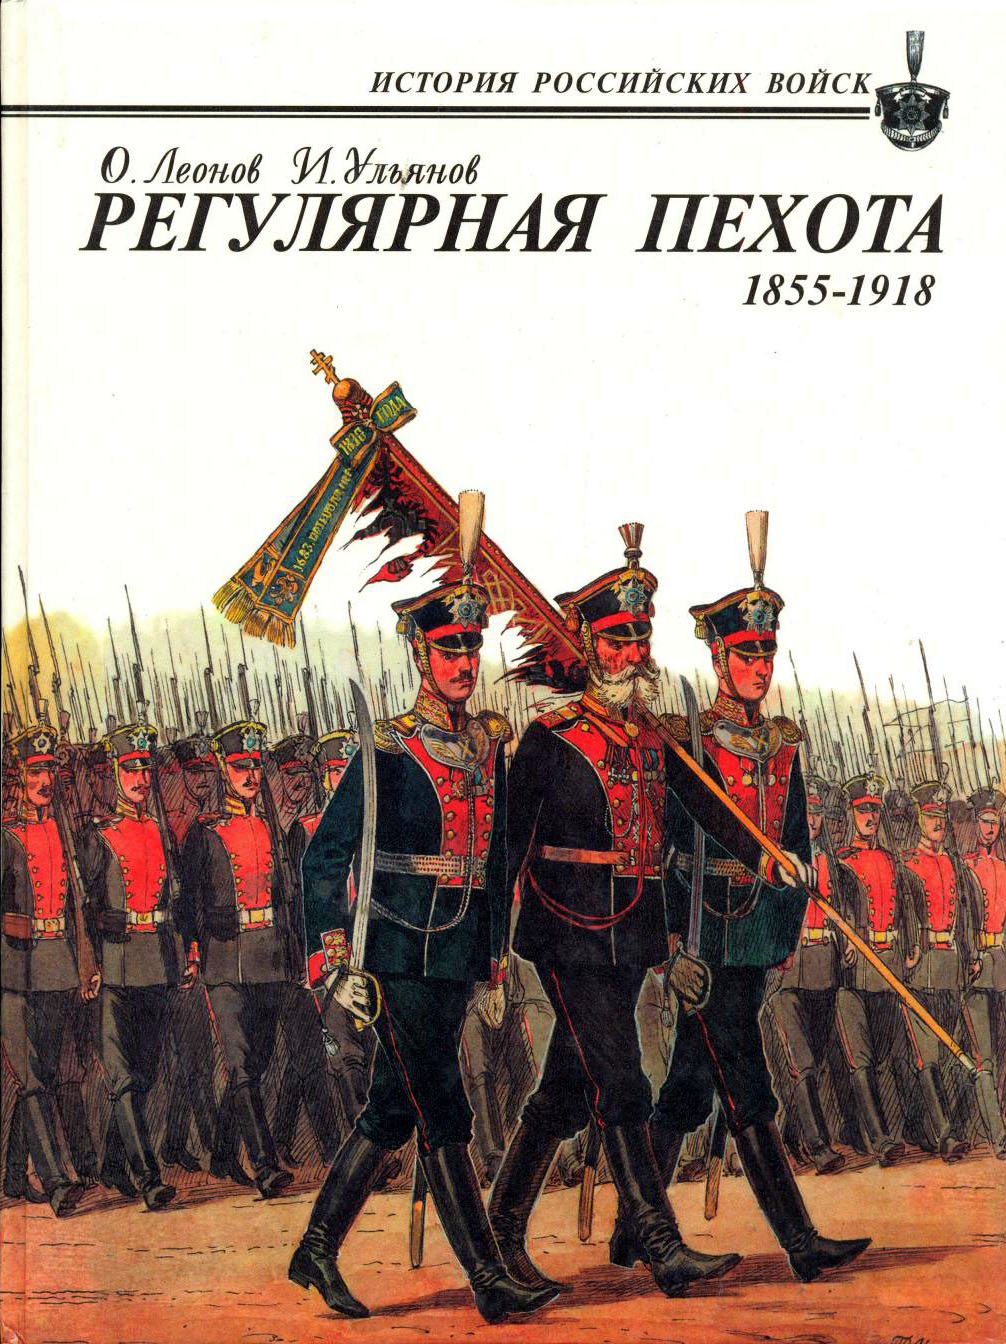 "O. Leonov, I. Ulyanov ""Regular infantry 1855-1918"""